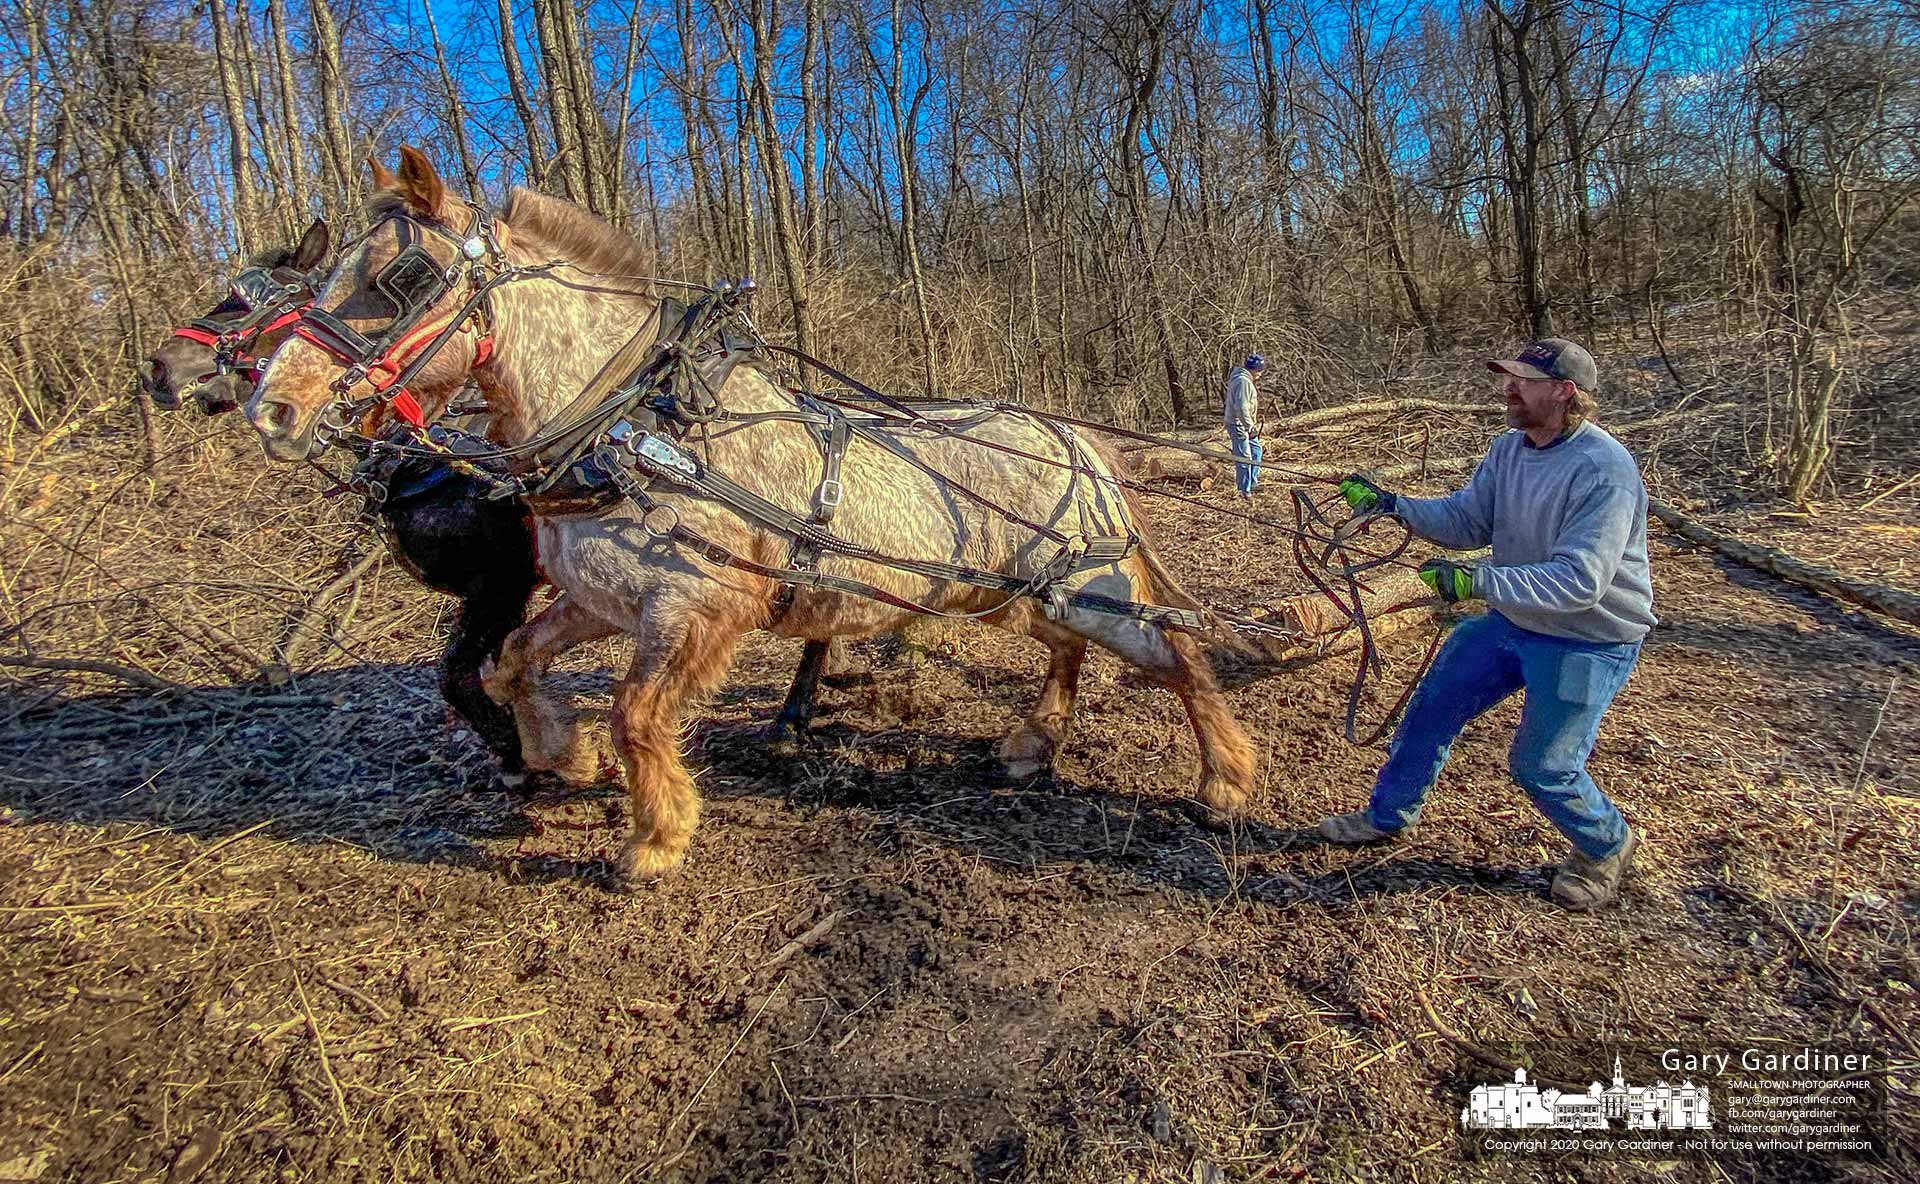 Draft horses Belle and Stormy pull logs and their owner, Rodney Parker, from woods being cleared along Africa Road. My Final Photo for Feb. 29, 2020.